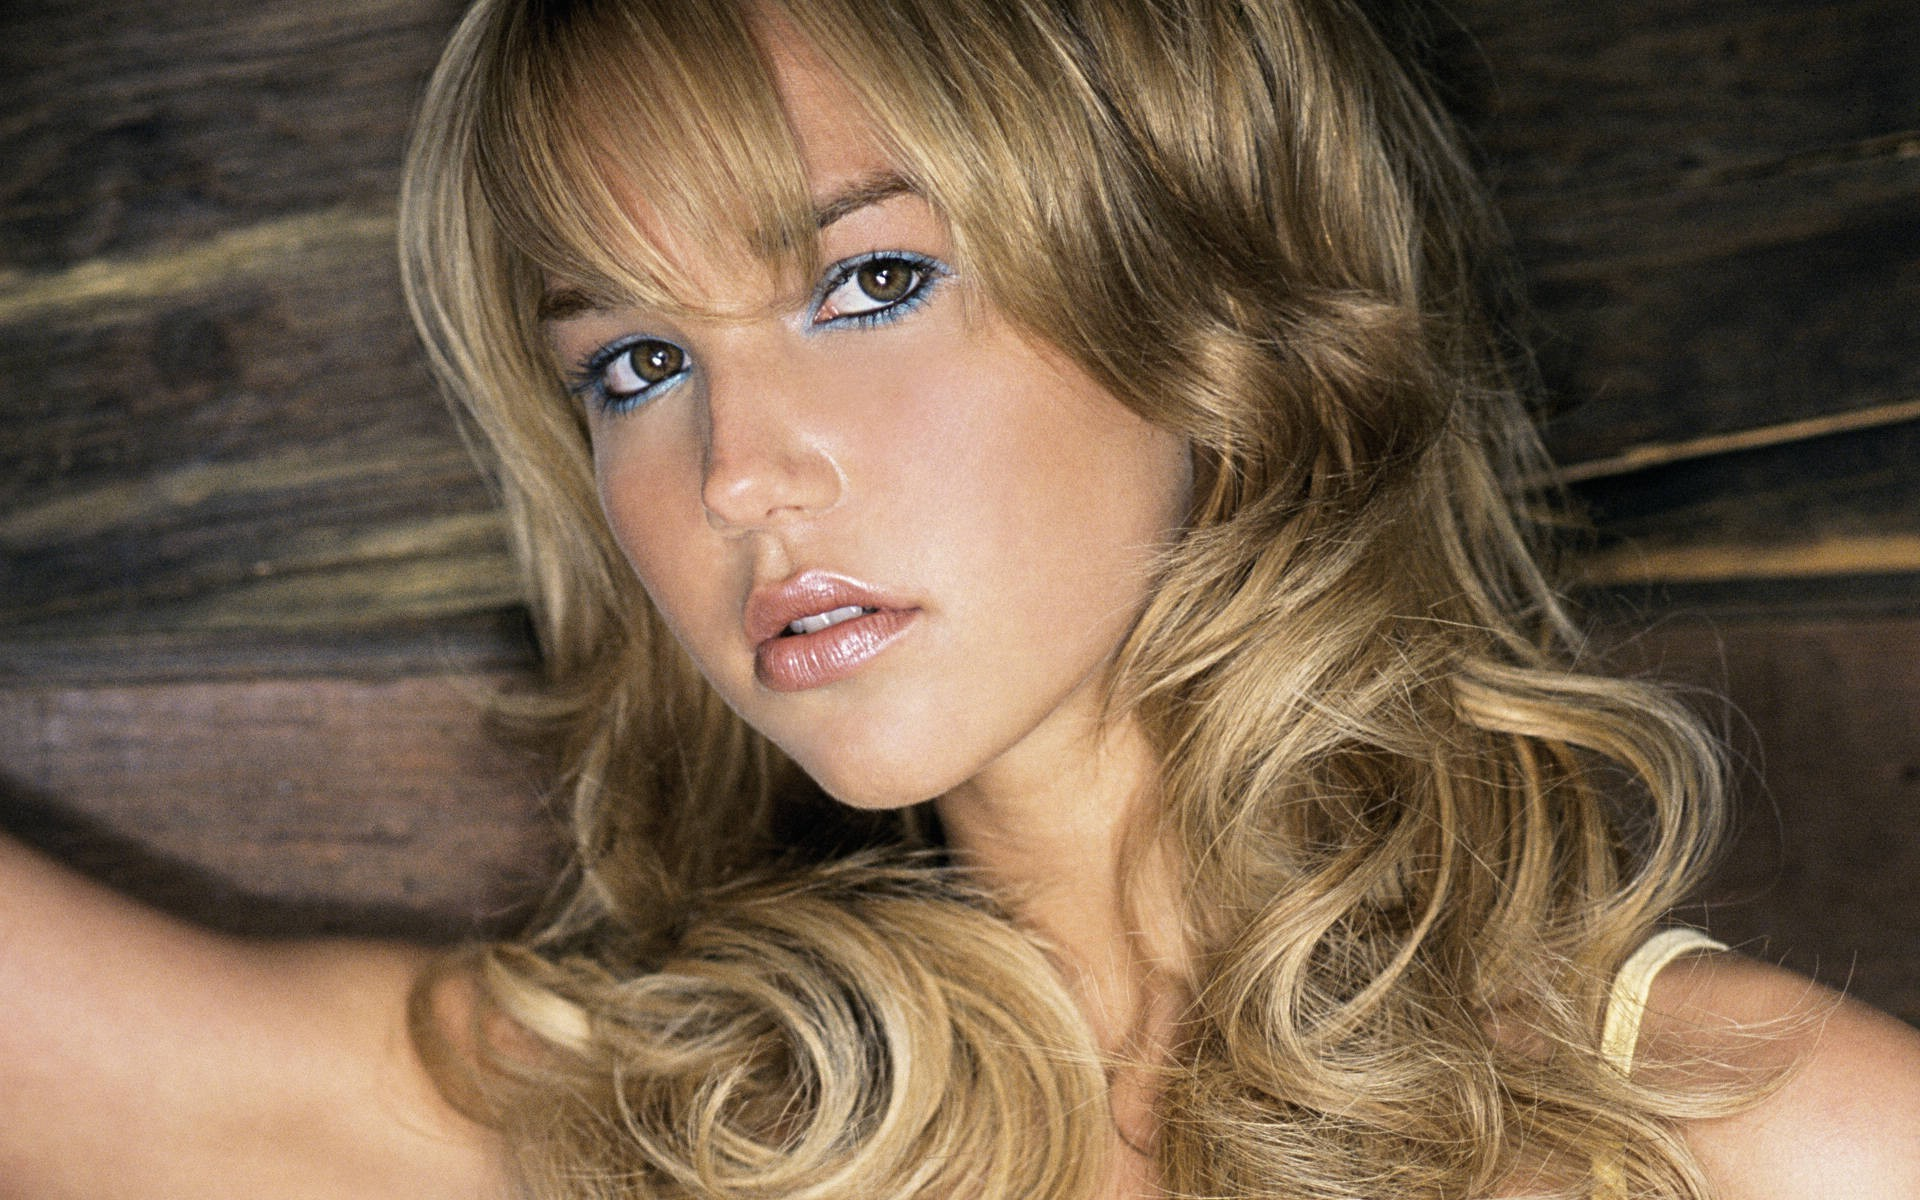 14 Hd Arielle Kebbel Wallpapers